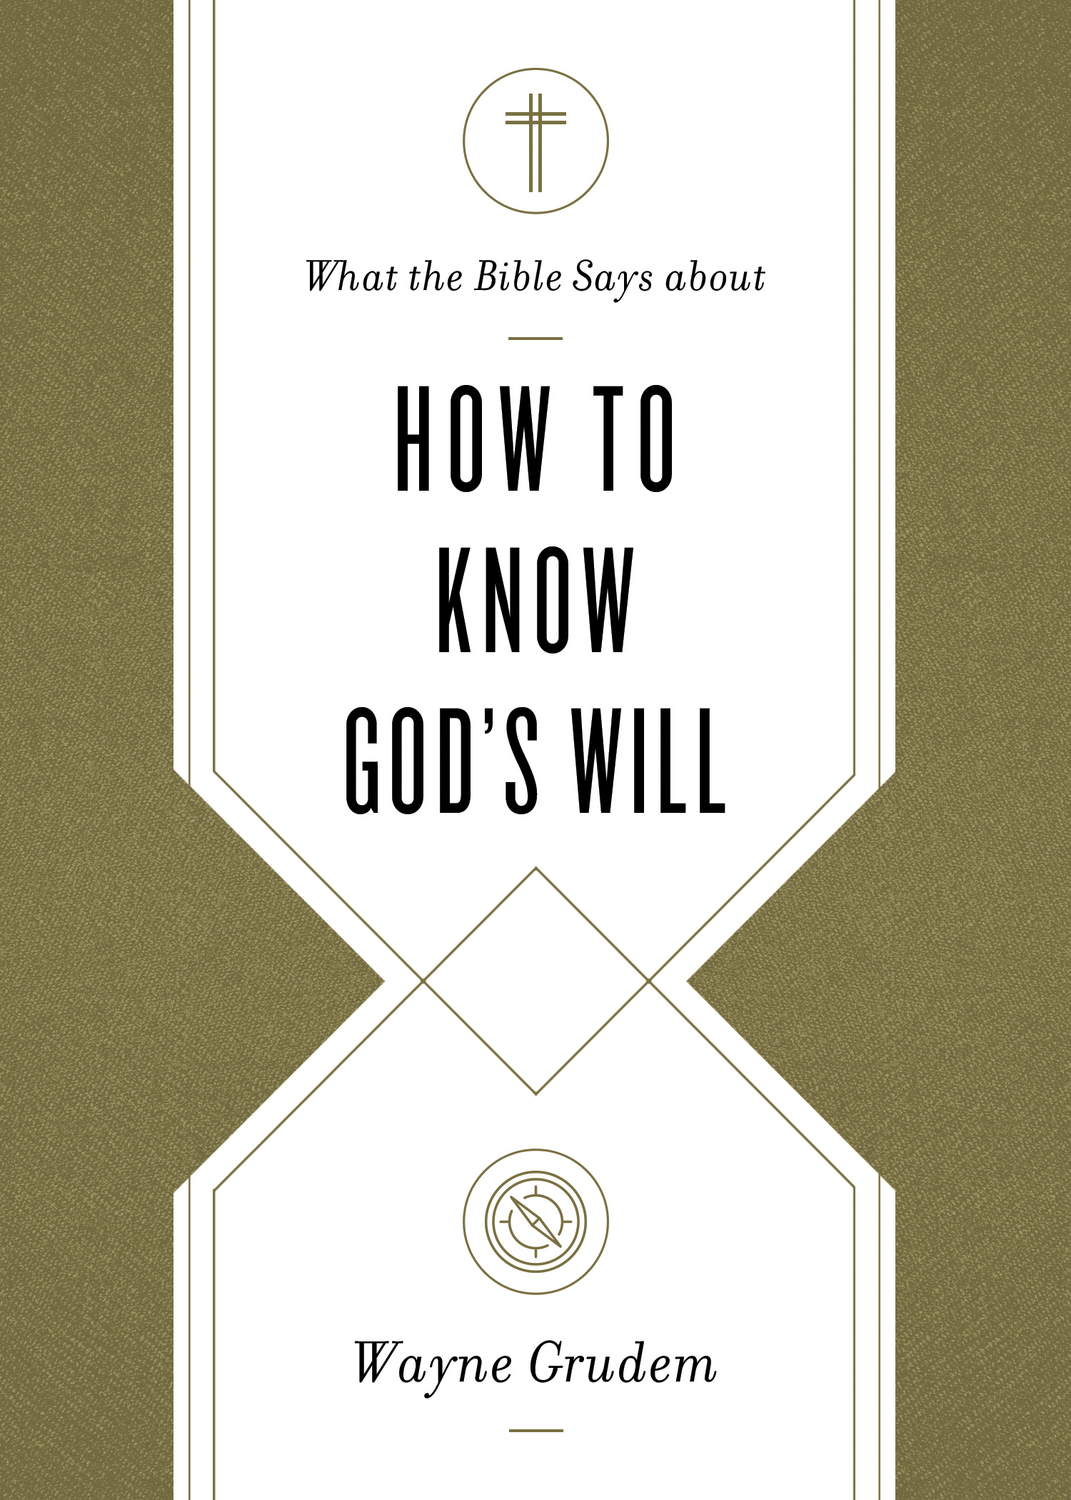 What the Bible Says about How to Know God's Will